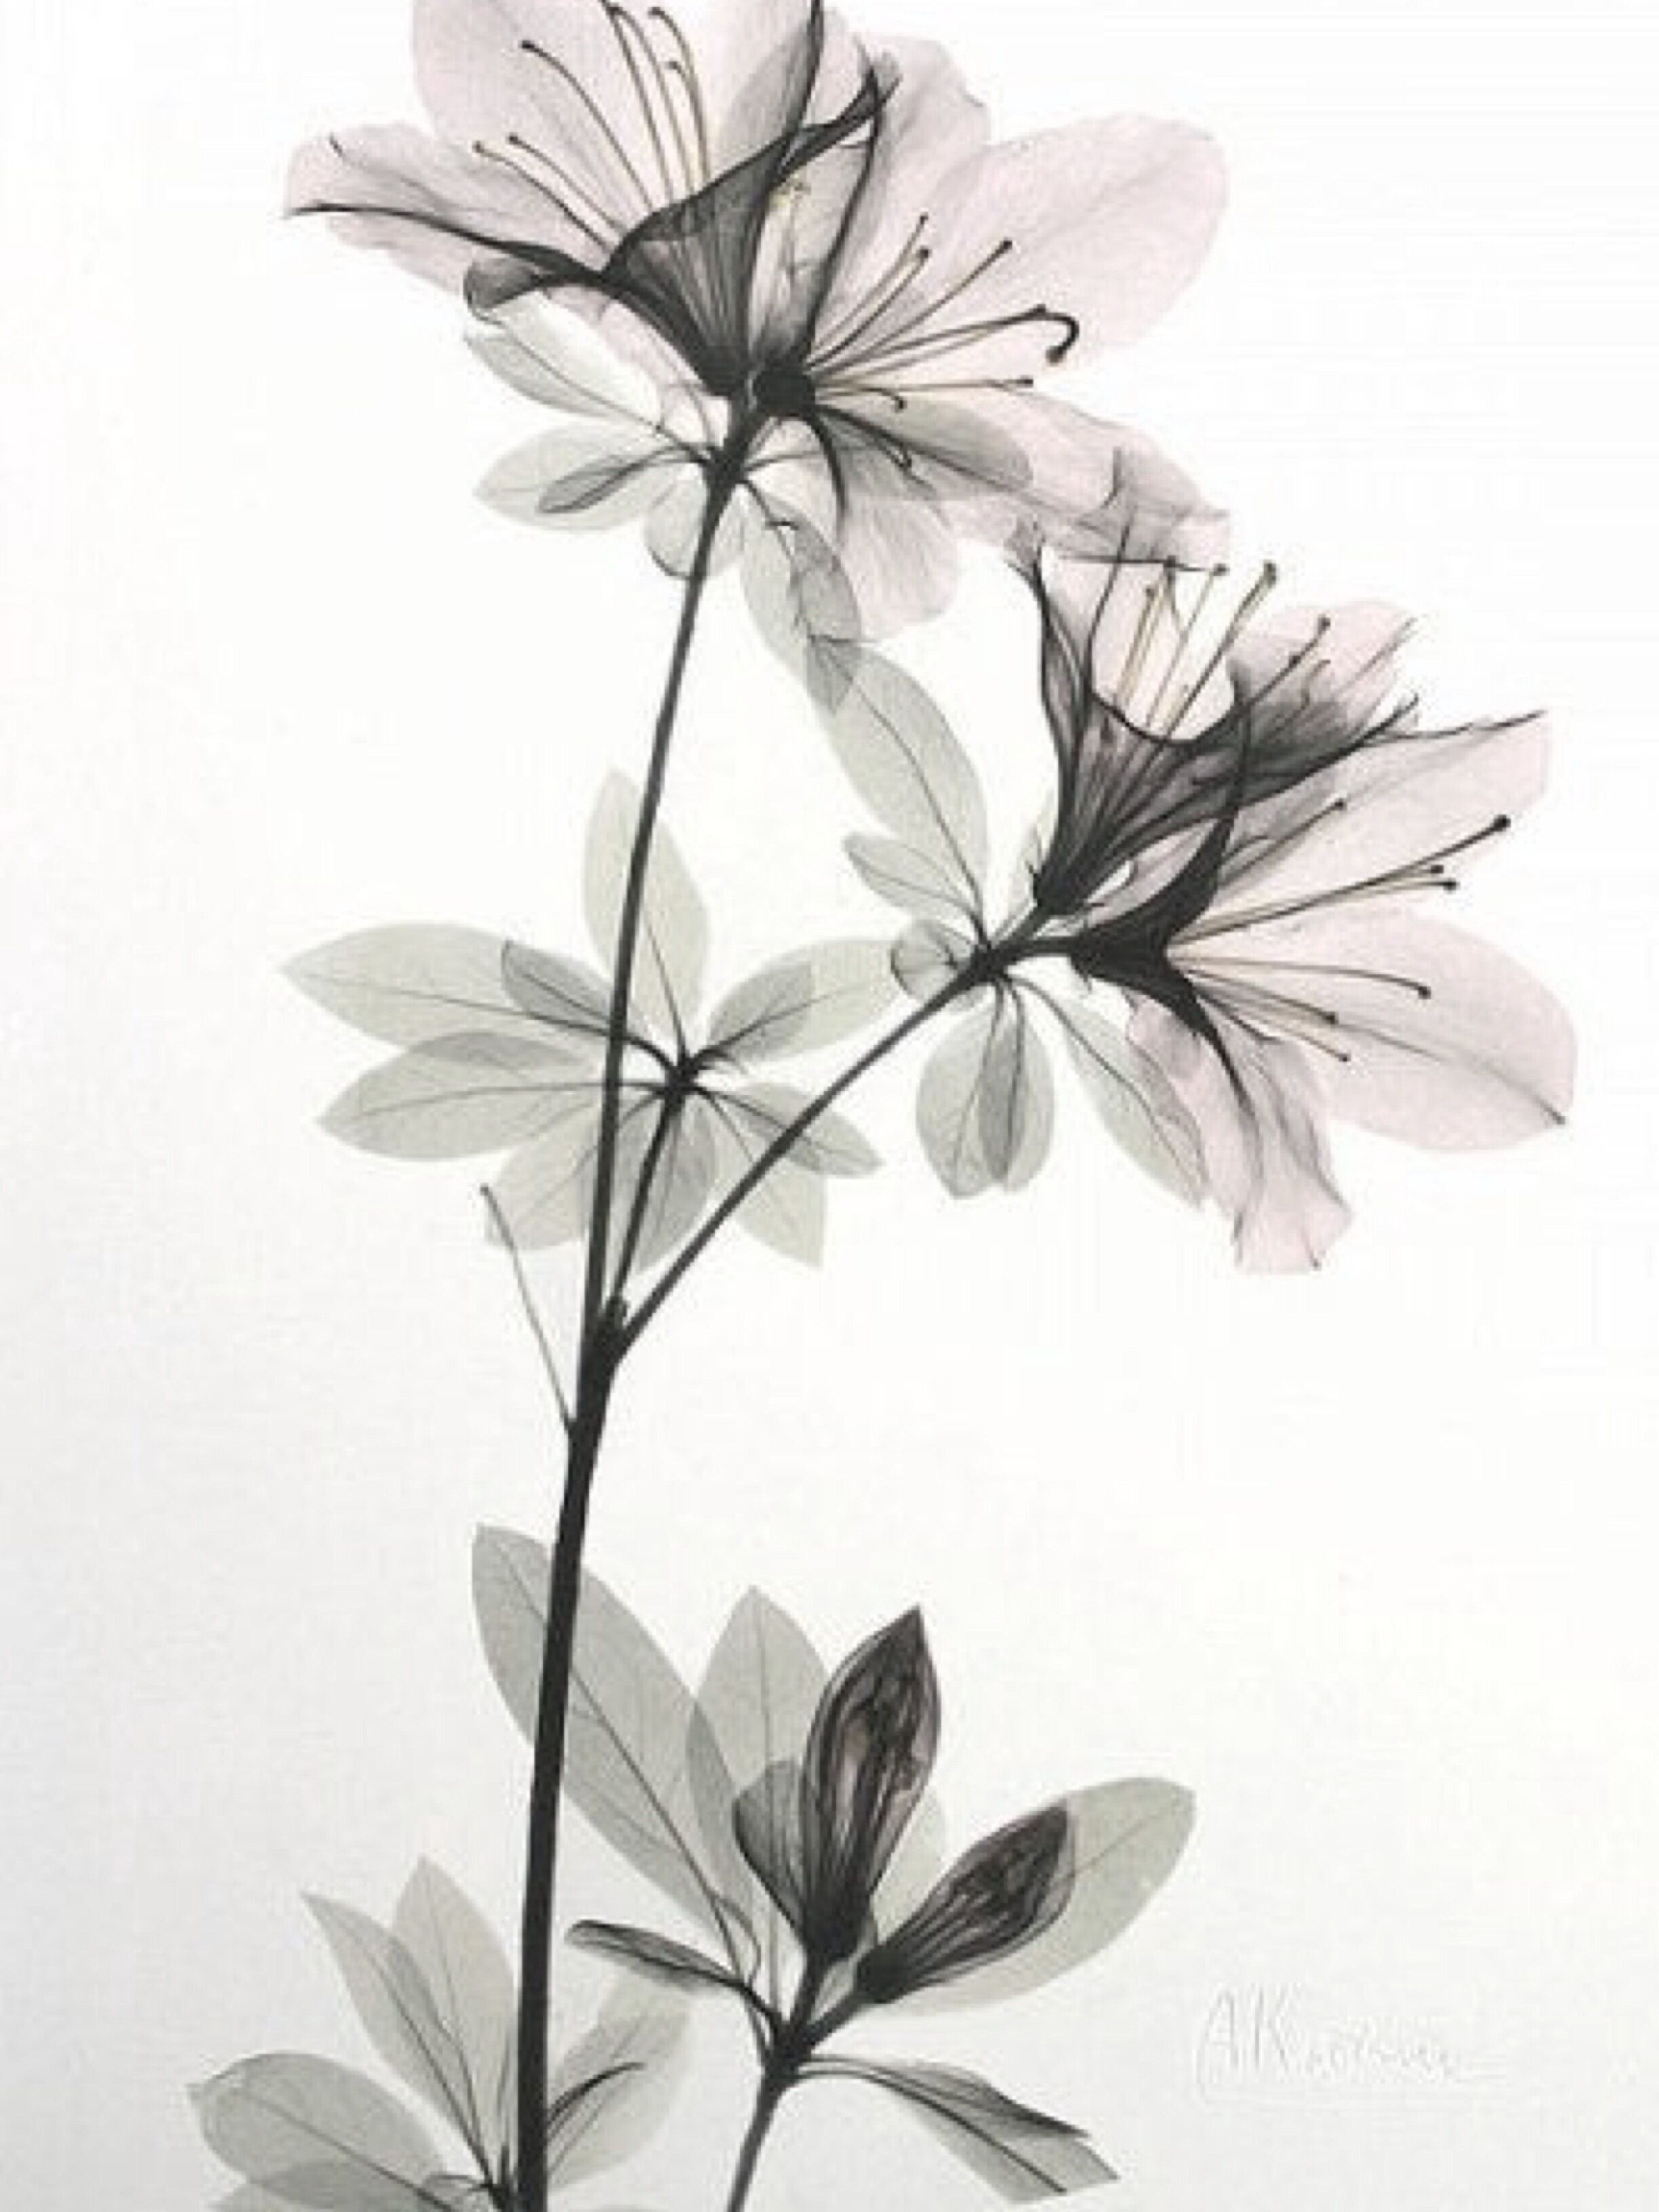 Xray Flower Prints Pin By Maria Briel On P E R S O N A L L I K E S Art